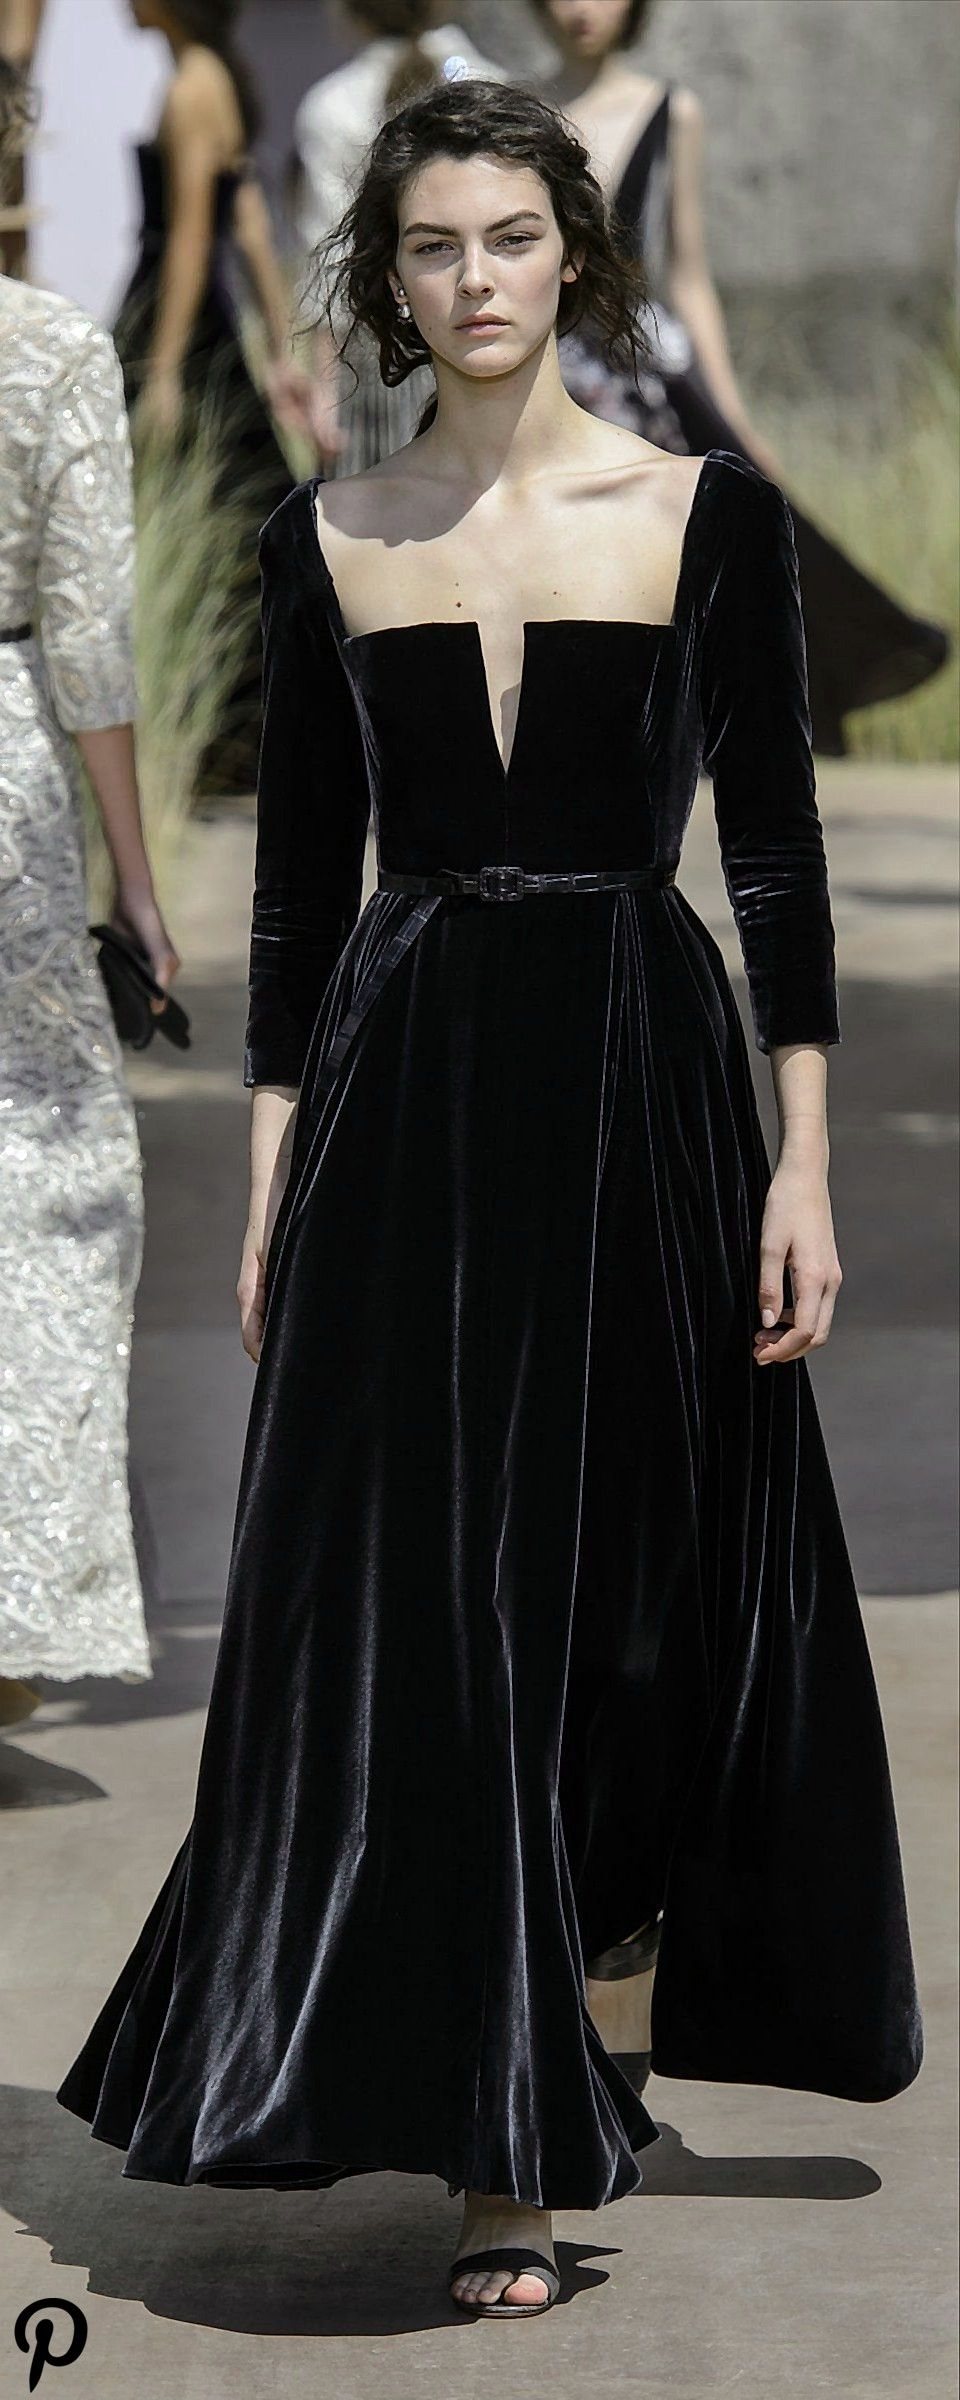 Christian Dior HerbstWinter 20172018  Couture Christian Dior HerbstWinter 20172018  Couture